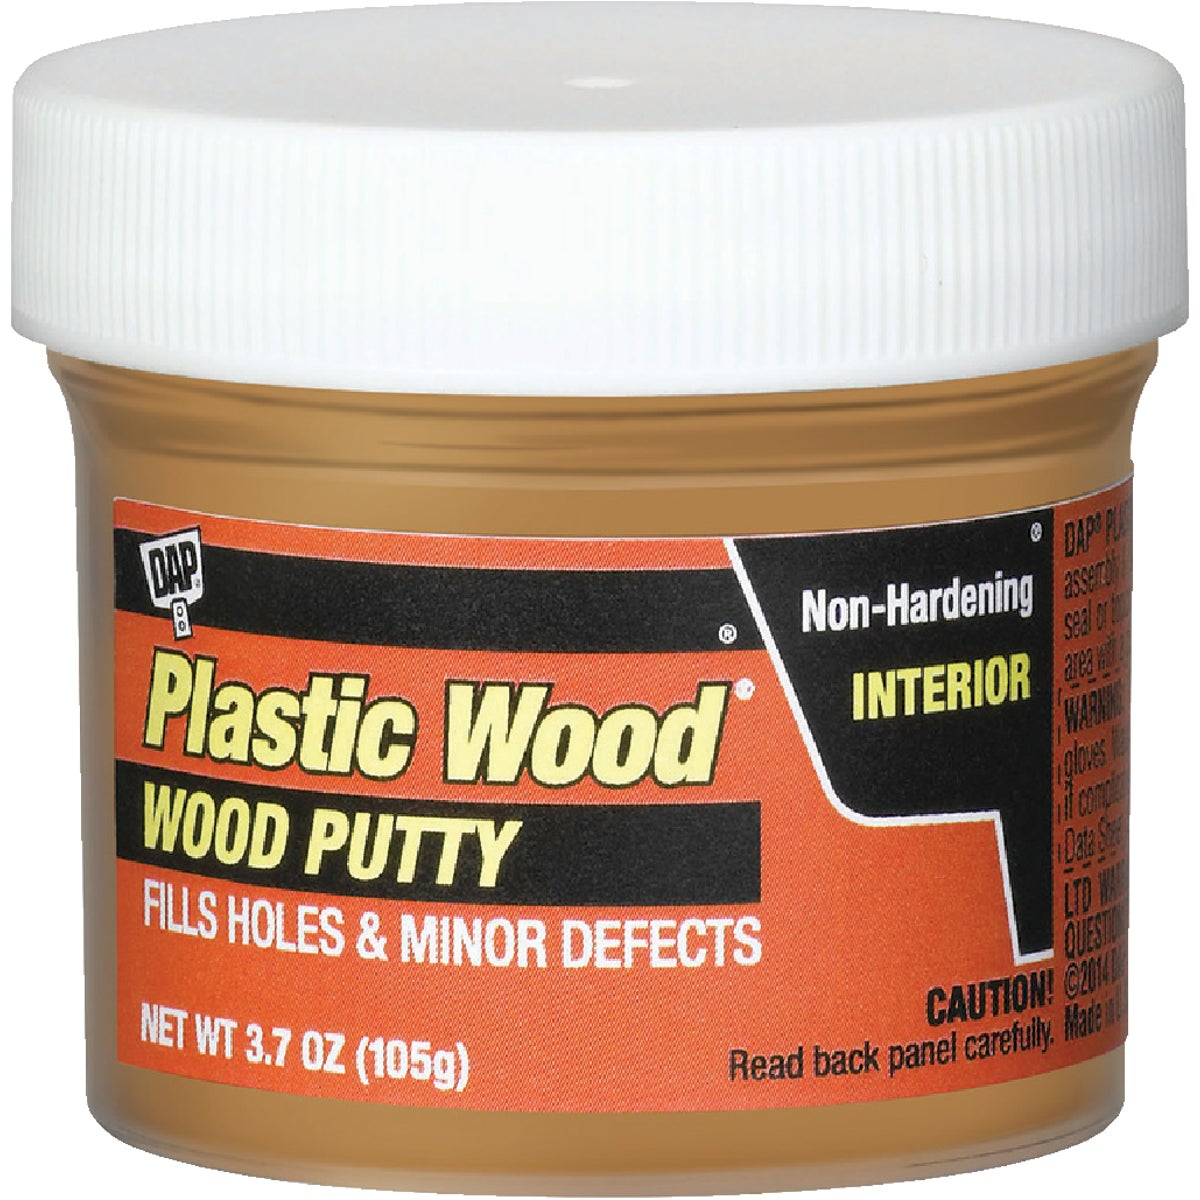 NATURAL OAK FINISH PUTTY - 21276 by Dap Inc